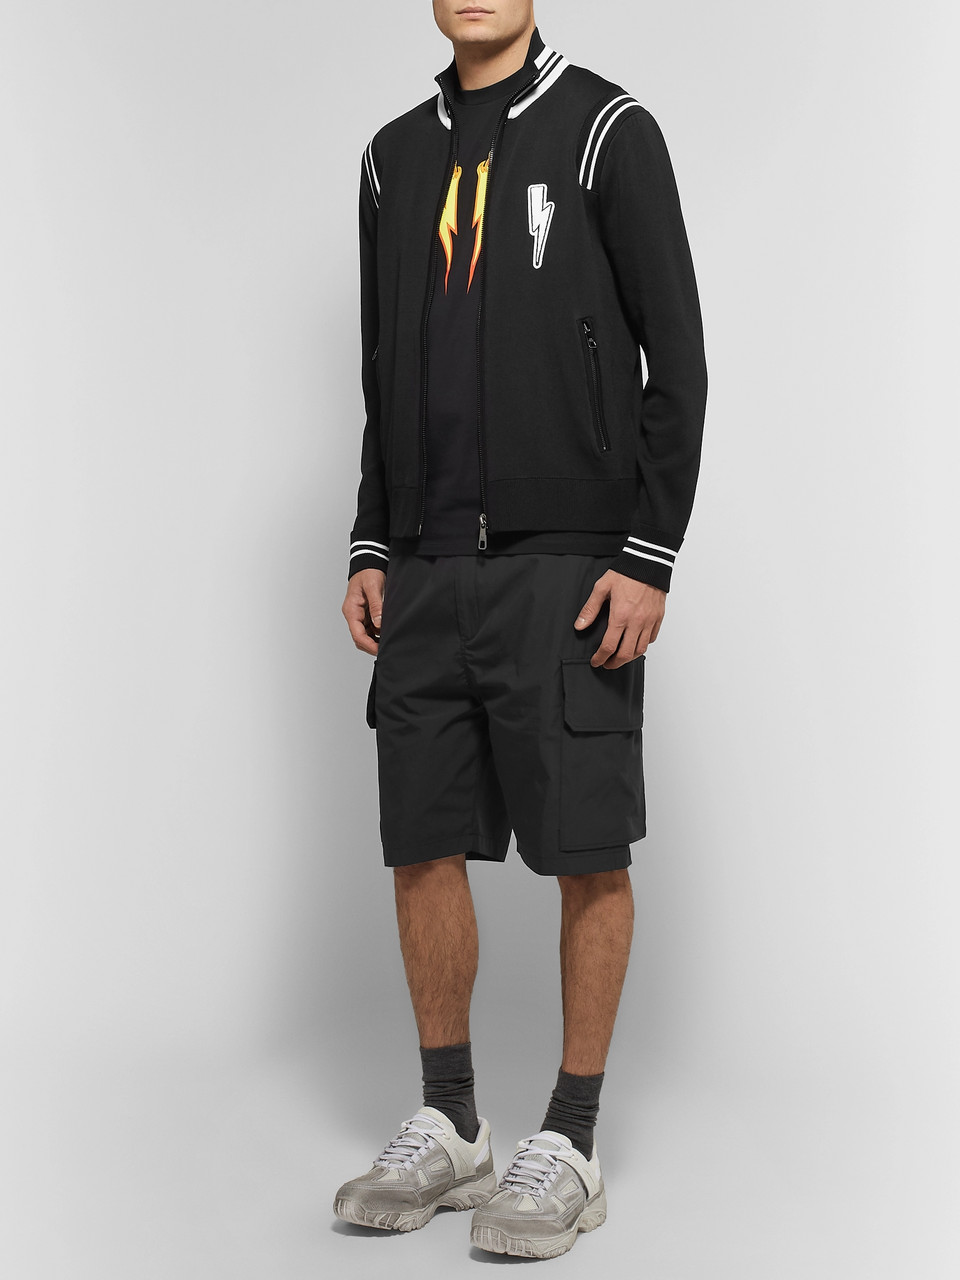 Neil Barrett Slim-Fit Appliquéd Tech-Jersey Track Jacket